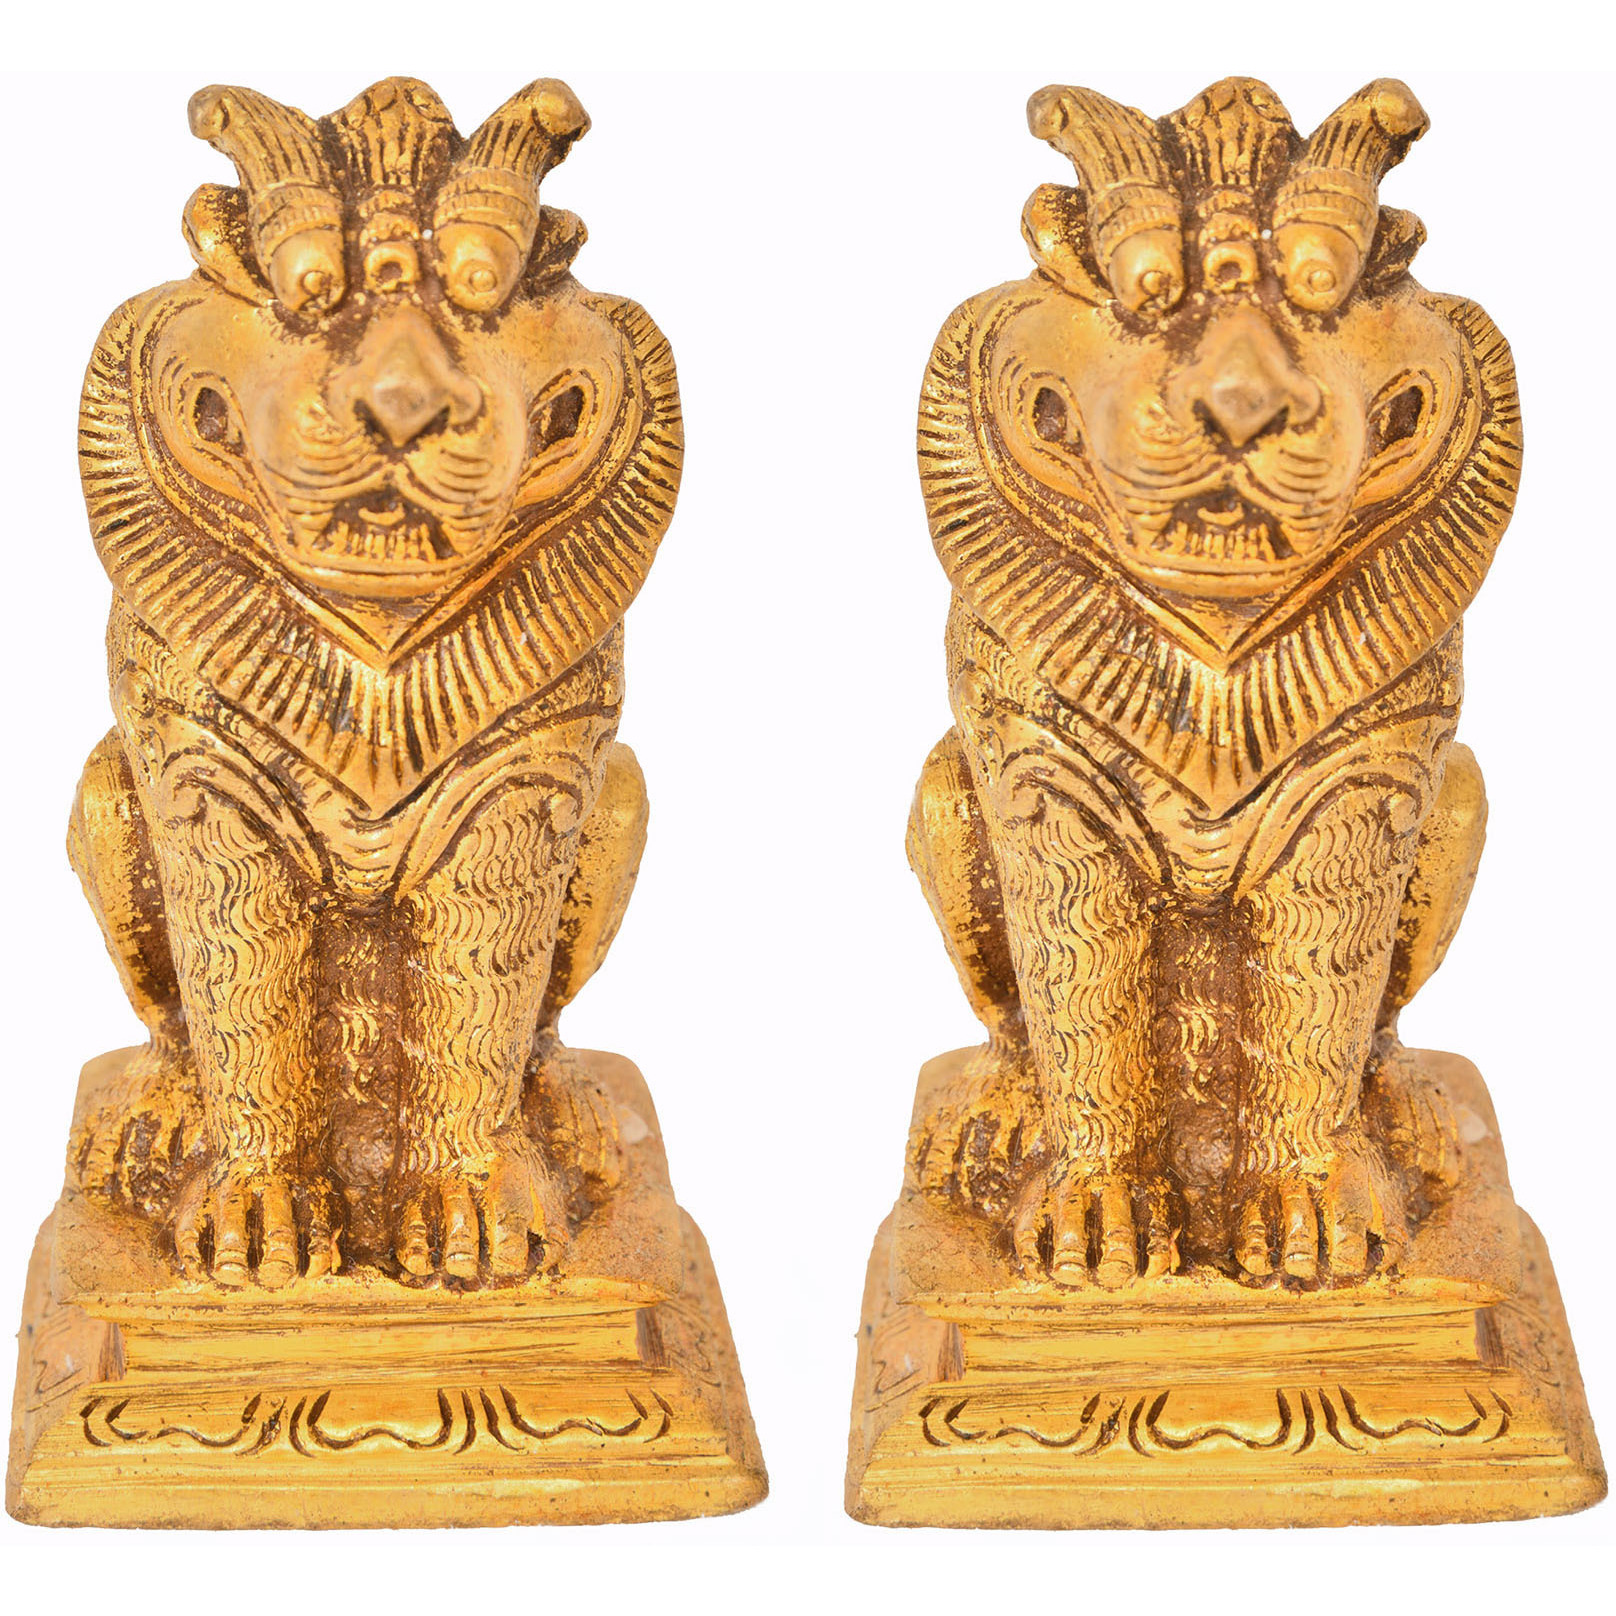 Pair of Yali (Temple Guardians)